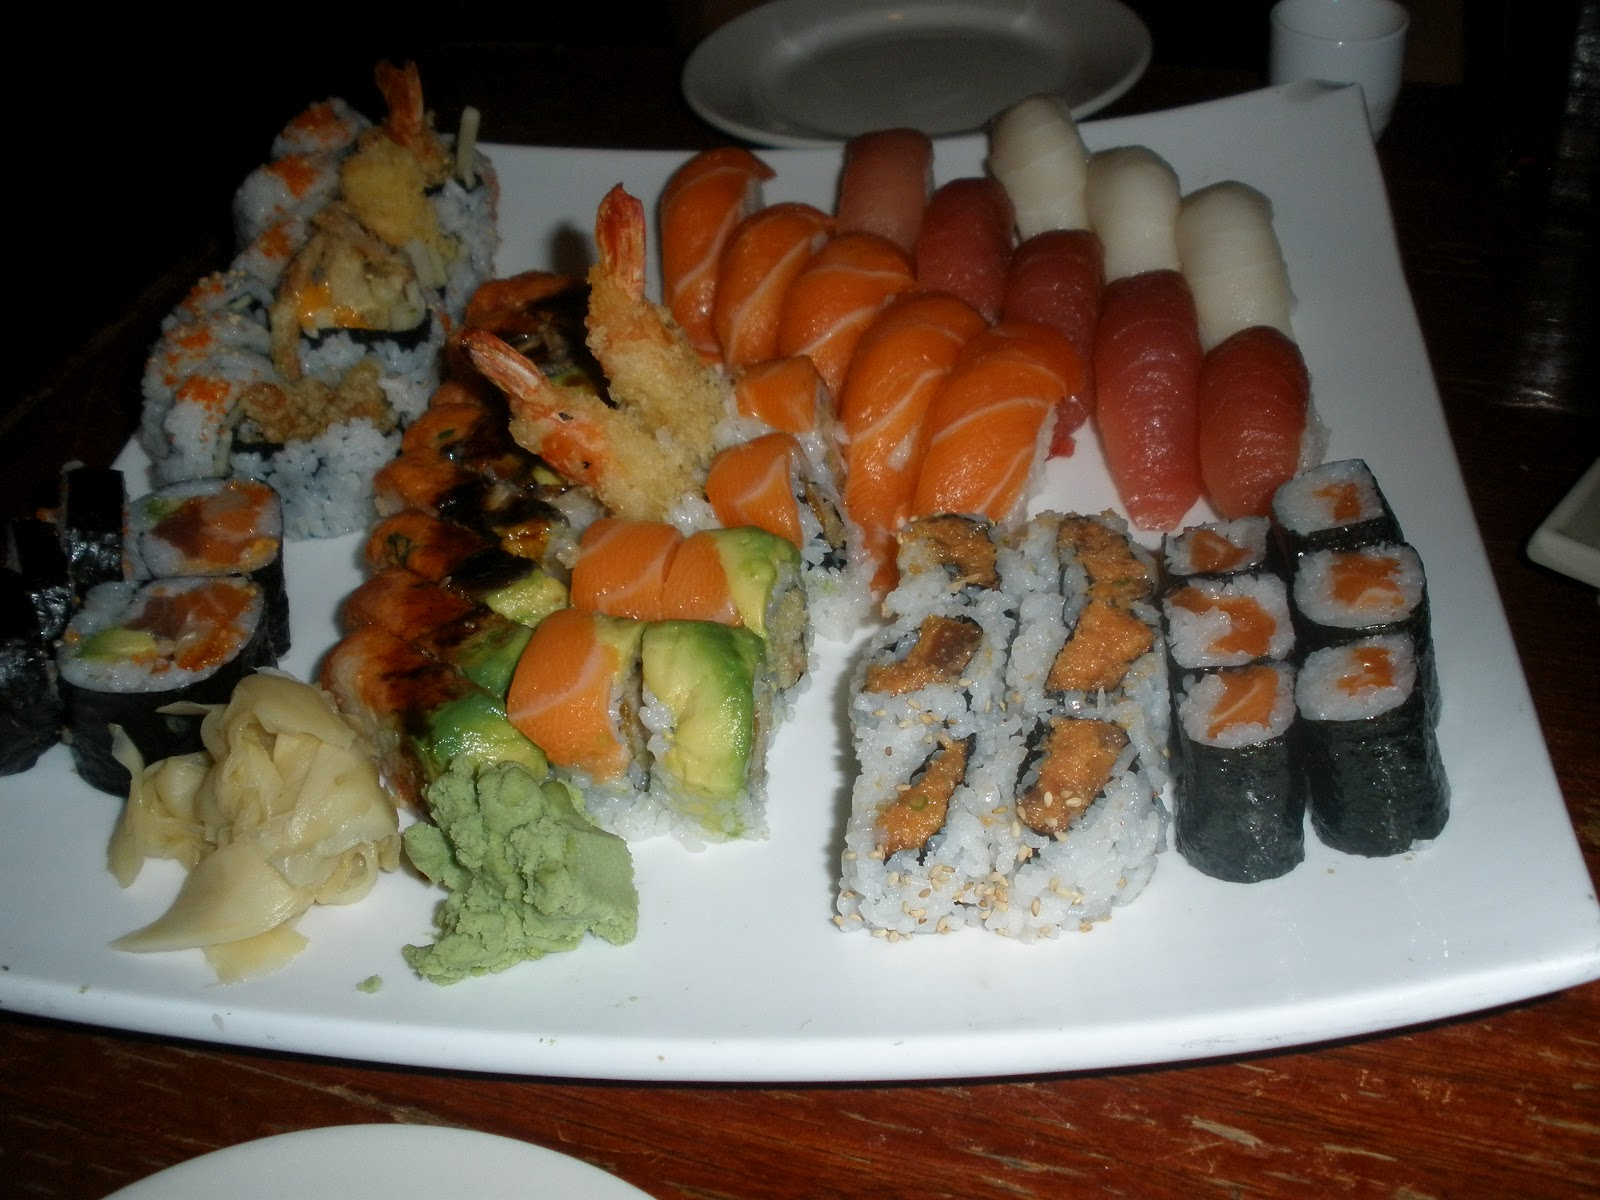 Hungry panda all you can eat sushi at new ashiya in nyc for Ashiya japanese cuisine